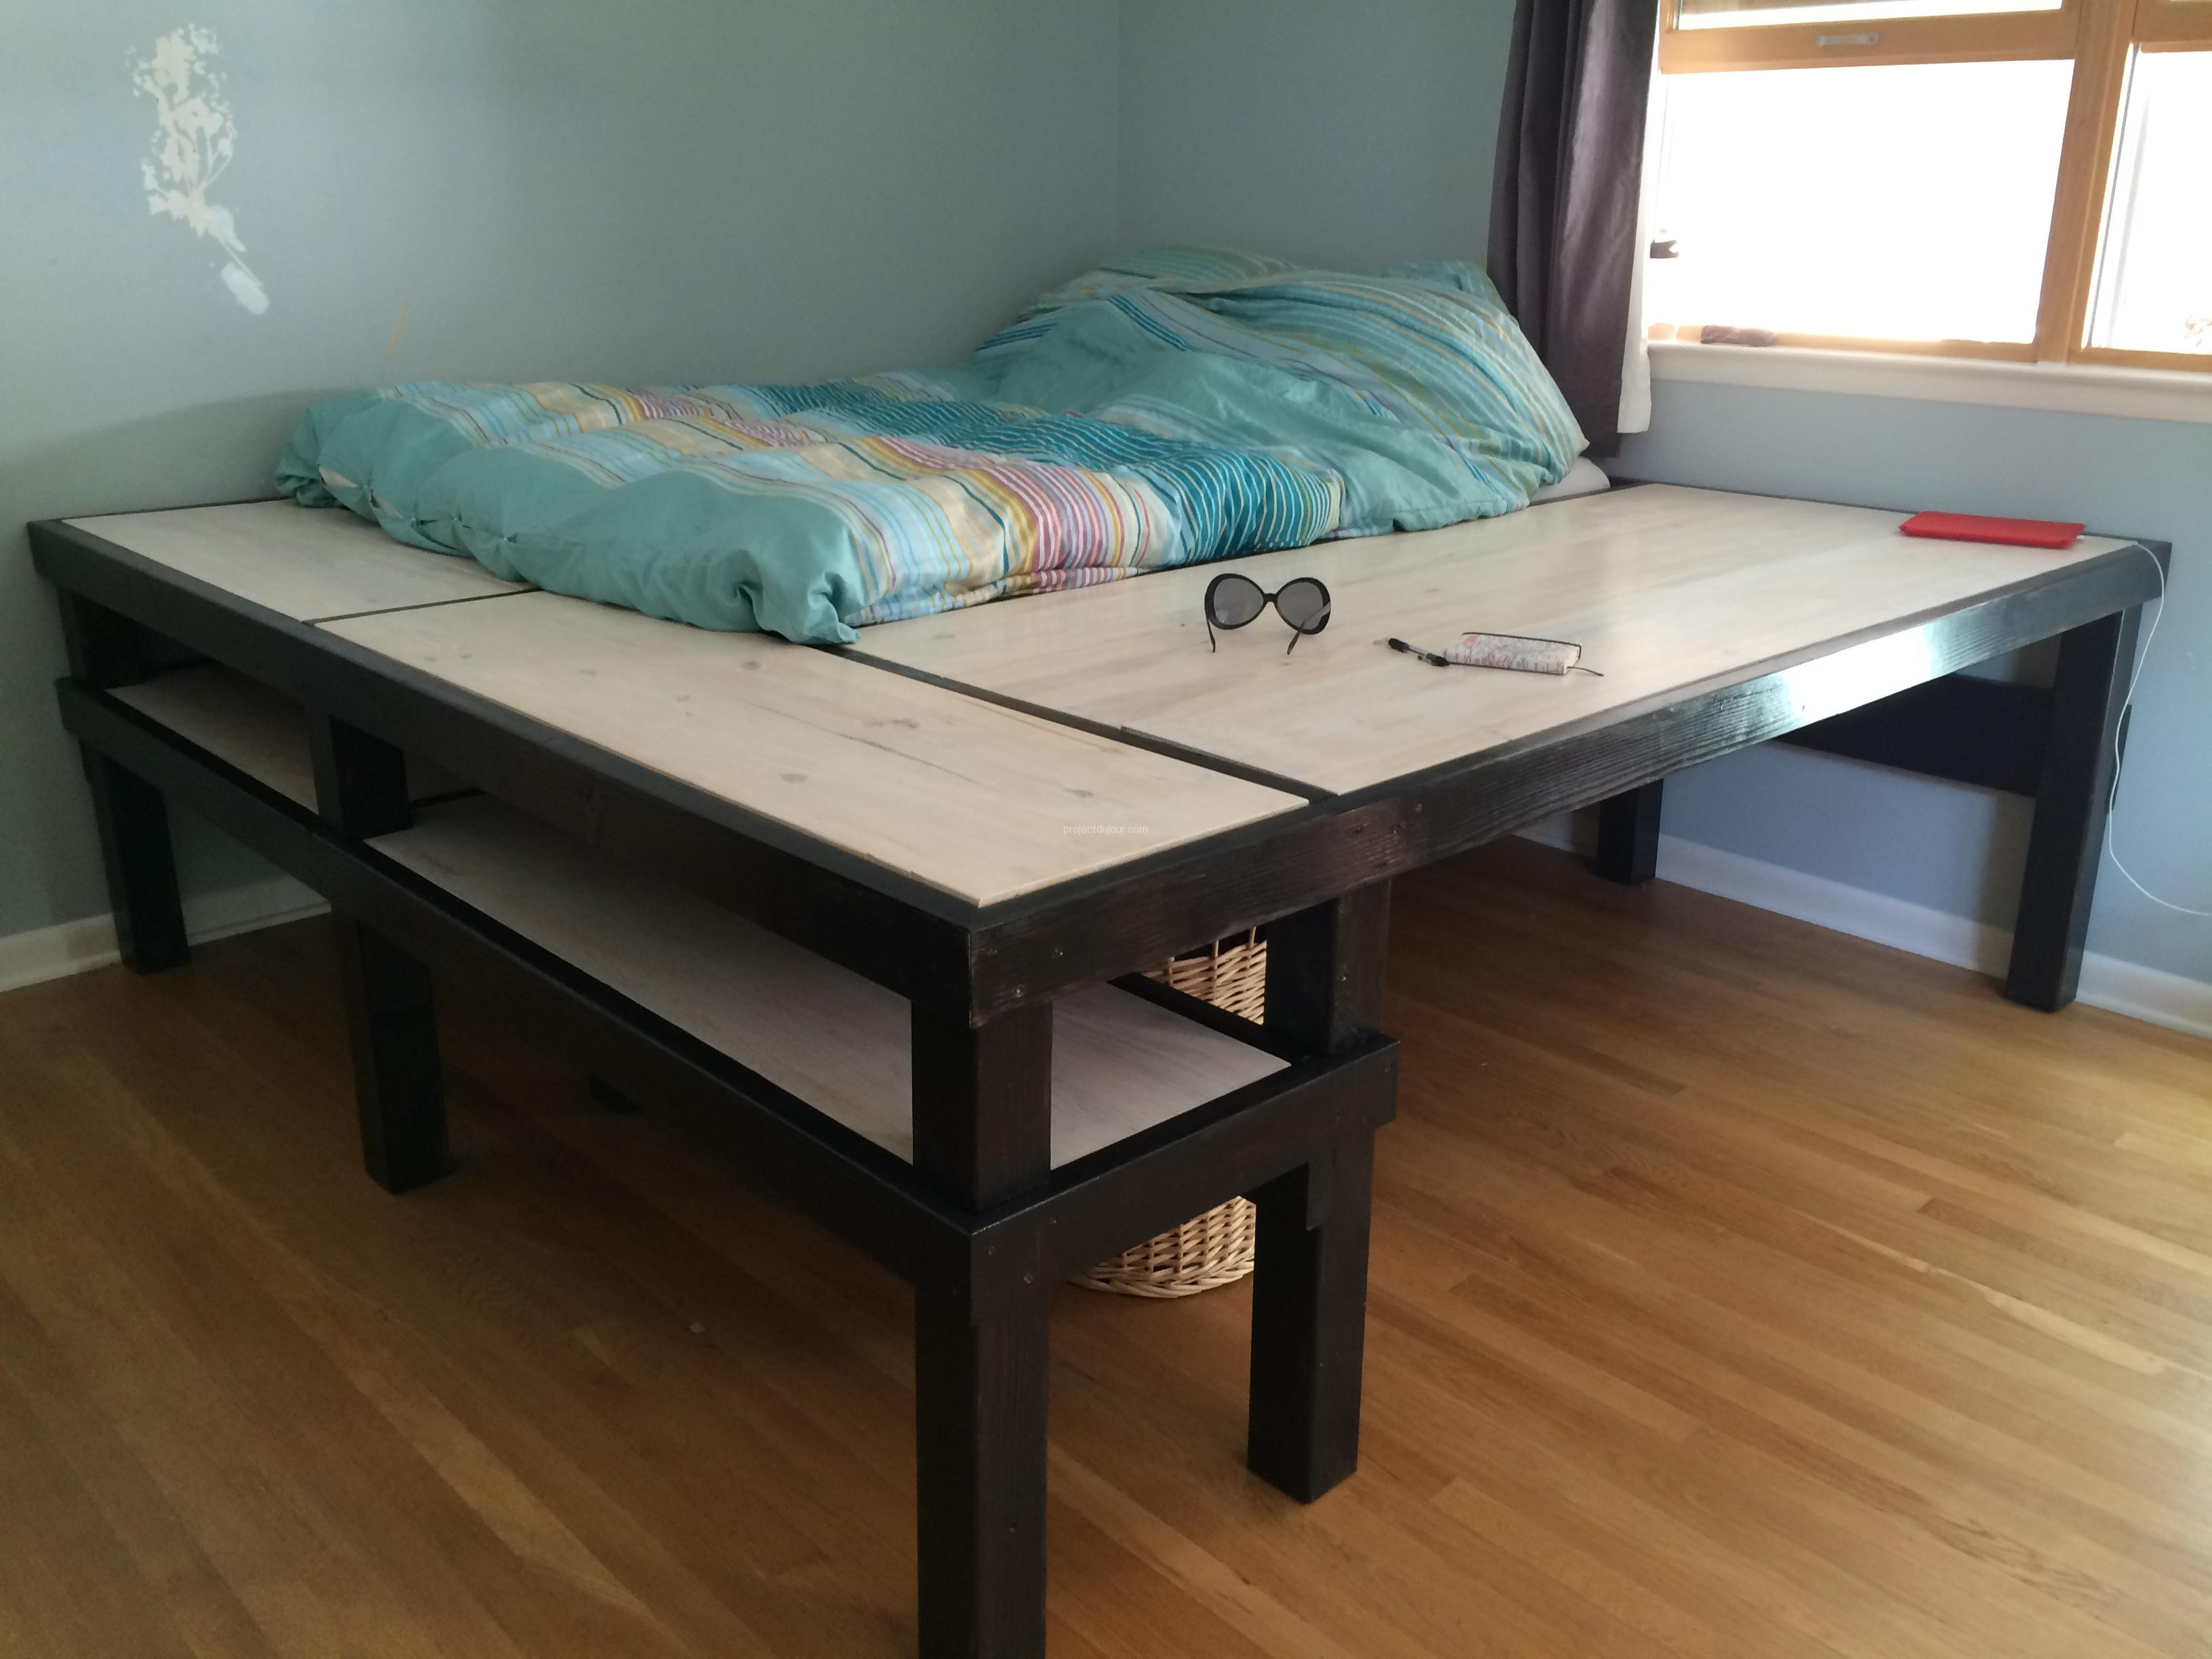 Best ideas about DIY Bed Table . Save or Pin DIY Bed Desk Now.